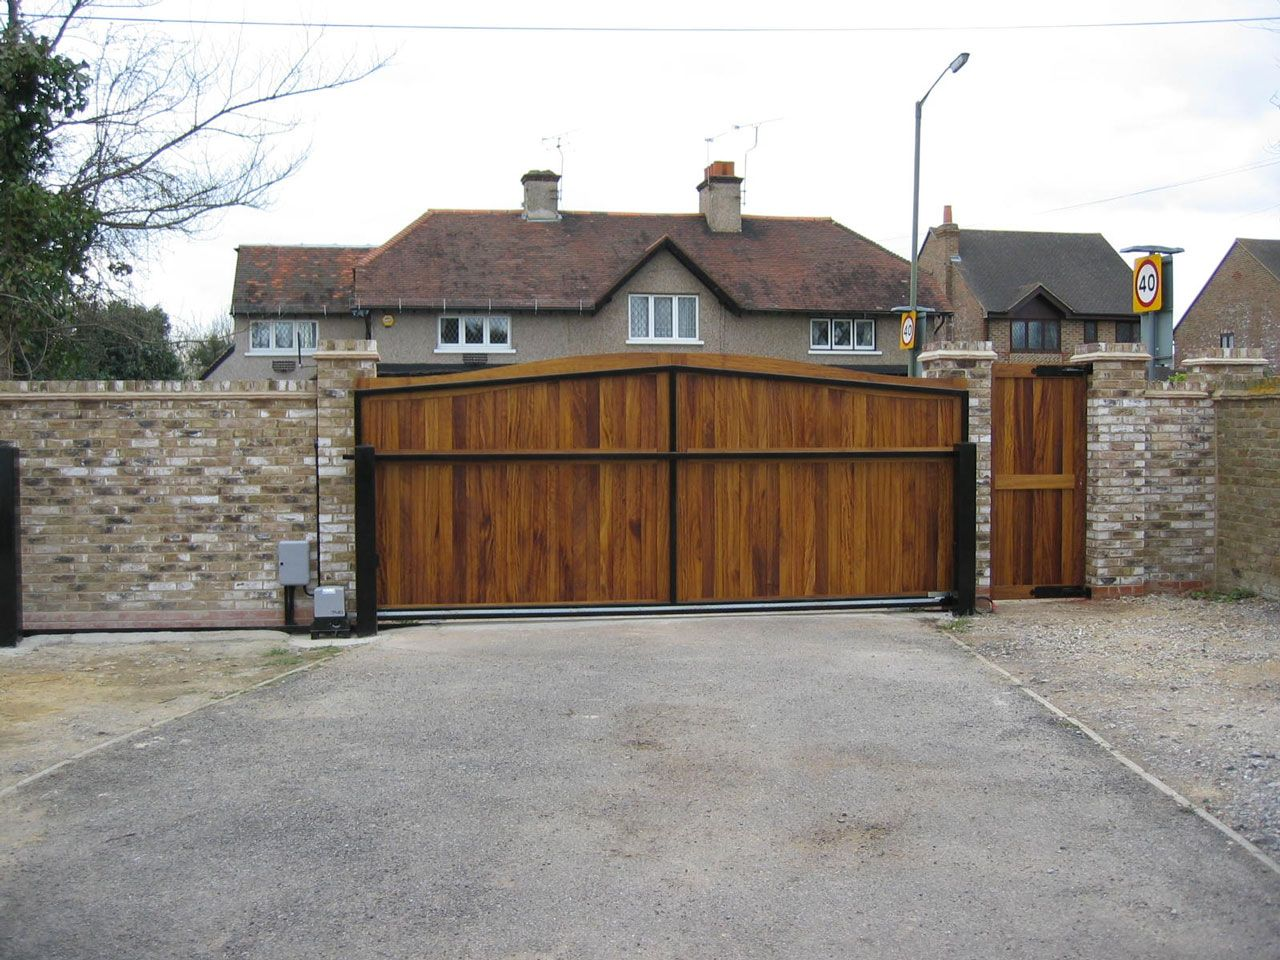 Gate Design Ideas front gate designs for homes home gate design huge on main gate home gate design Traditional Hardwood Gate Design Ideas Feat Exposed Brick Wall Front Yard Fence And Chimneys